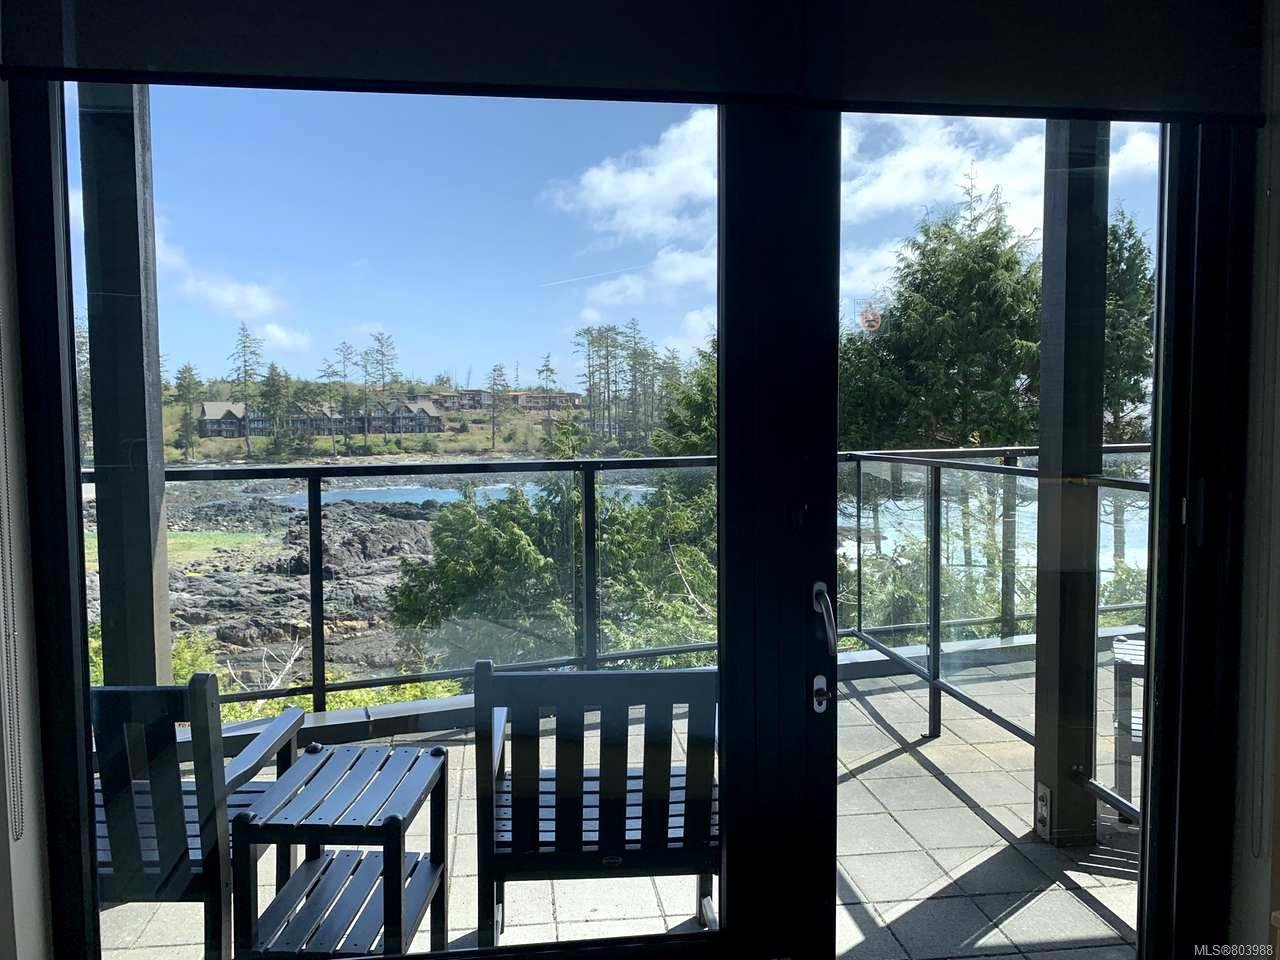 Main Photo: 208 596 Marine Dr in UCLUELET: PA Ucluelet Condo for sale (Port Alberni)  : MLS®# 803988